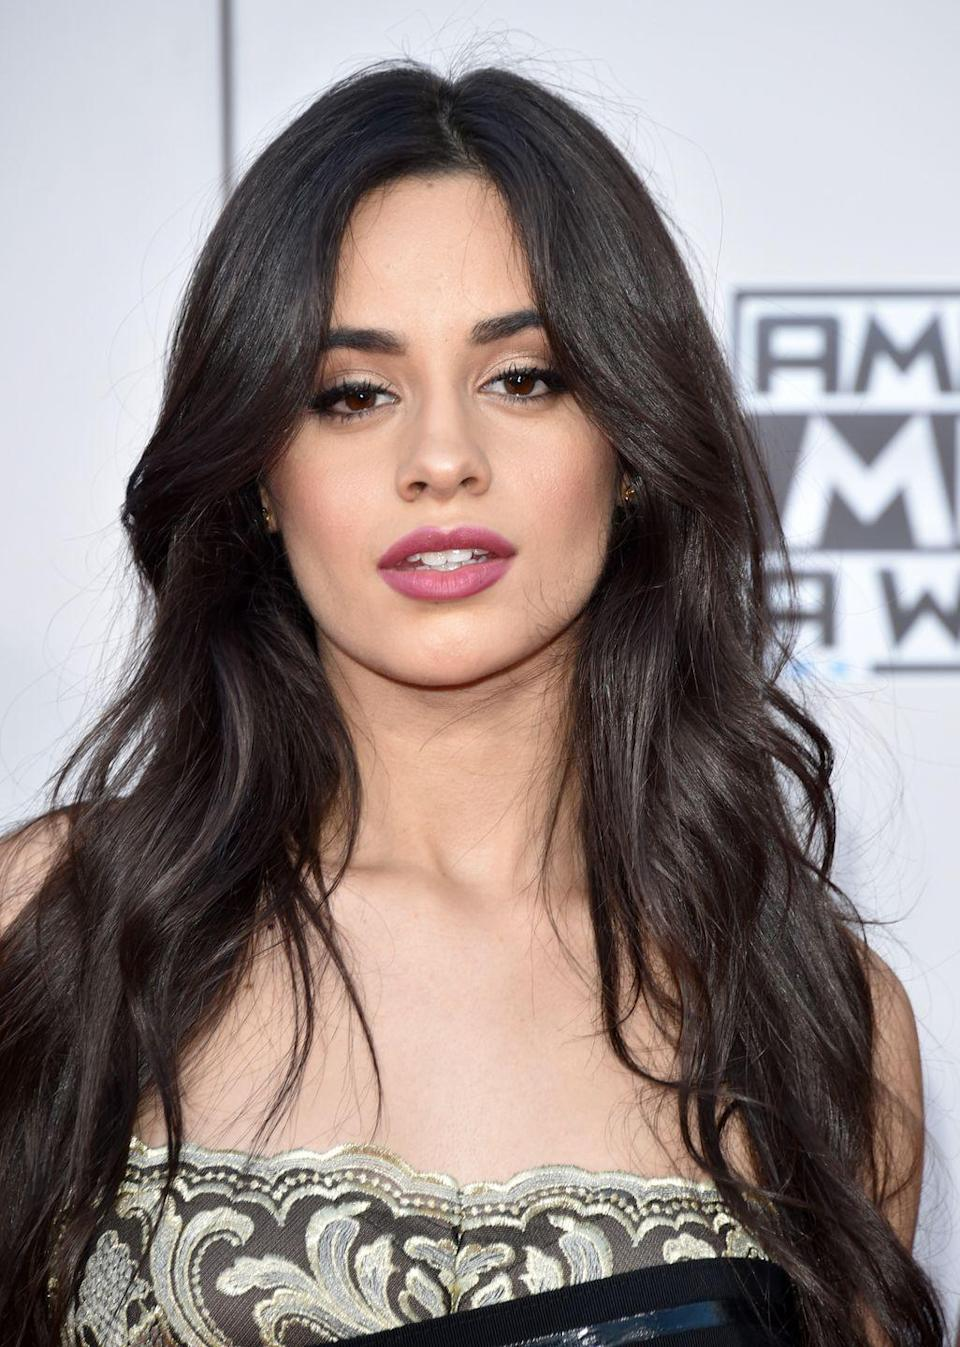 "<p>Camila Cabello was one of the contestants on the U.S. version of <em>The X Factor. </em>Even though she was eliminated, she was brought back to form the girl group Fifth Harmony, just like One Direction in the U.K. version. She left the group in 2016 and put out hits like ""Havana"" and ""Señorita,"" so she's doing just fine.</p>"